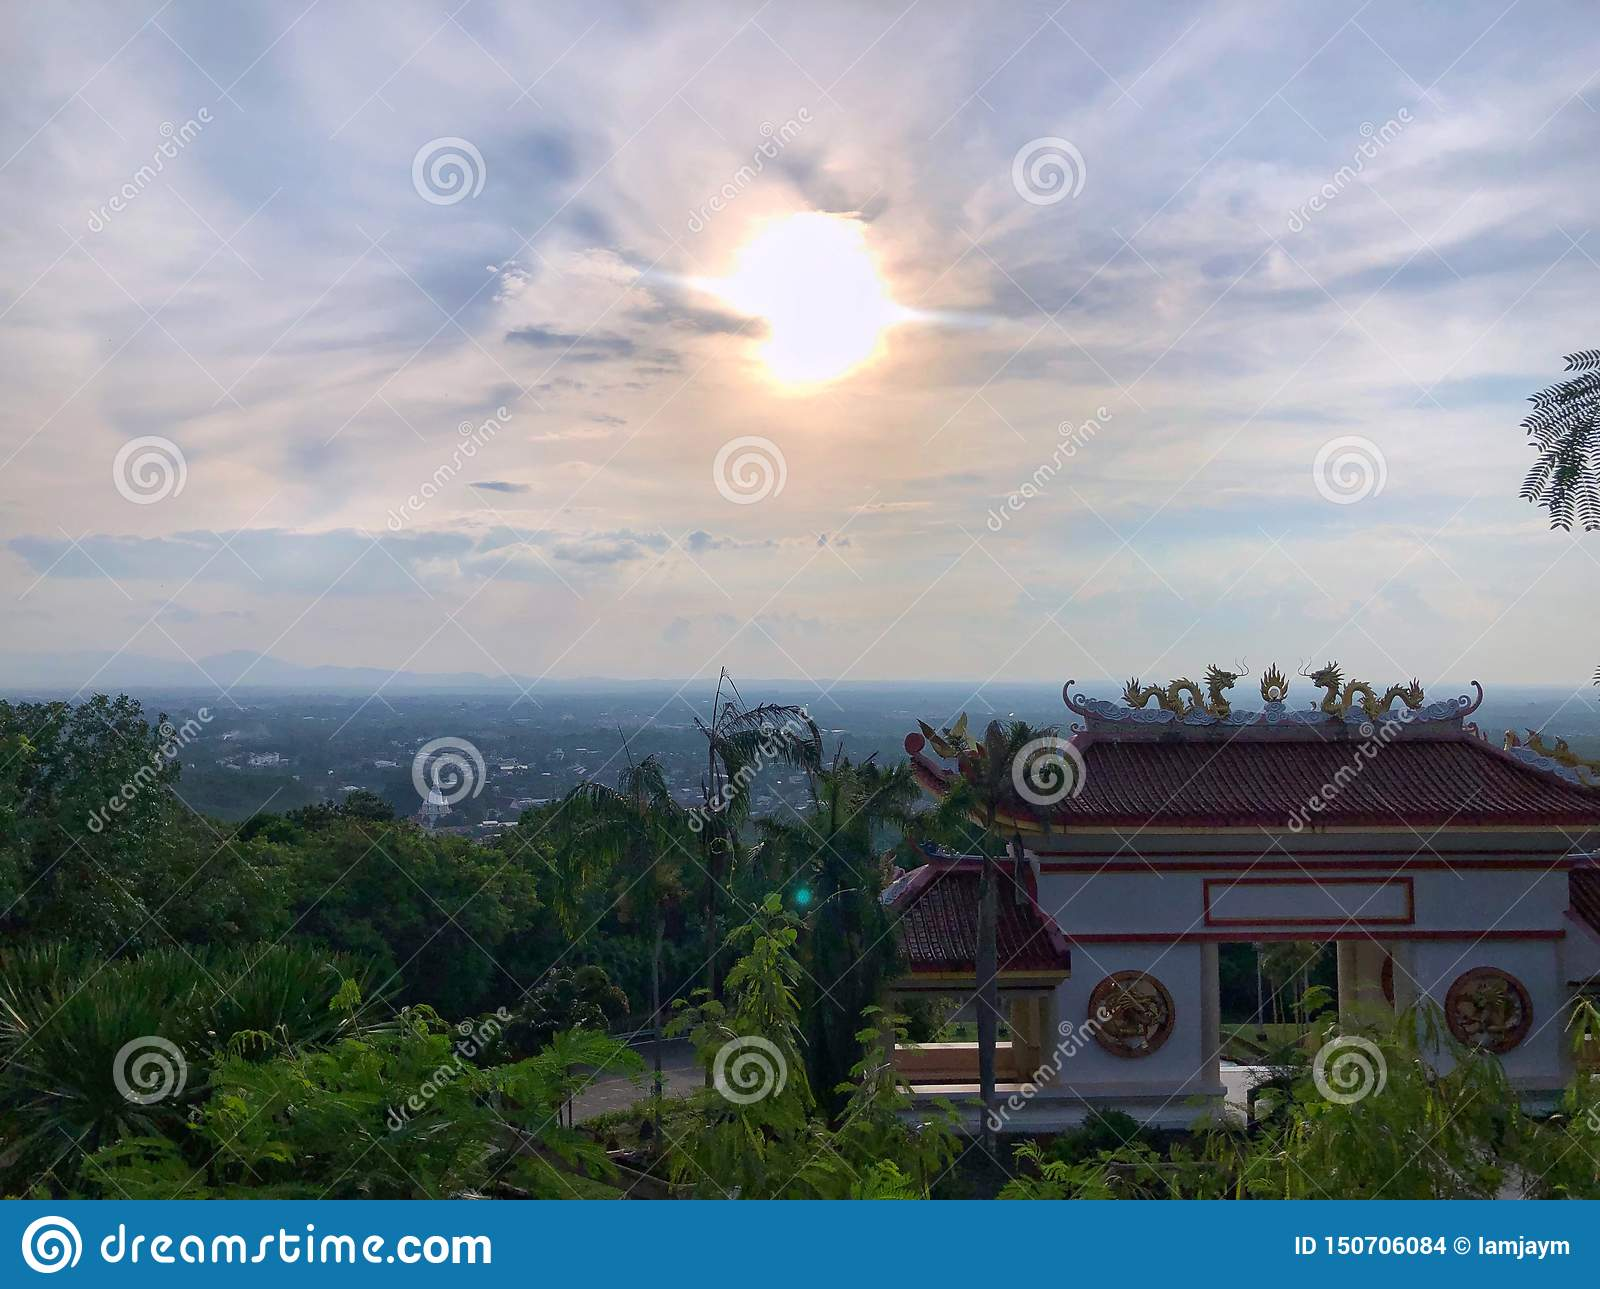 Vector illustration, funny Monkey chimpanzeeLandscape from high view with blue sky